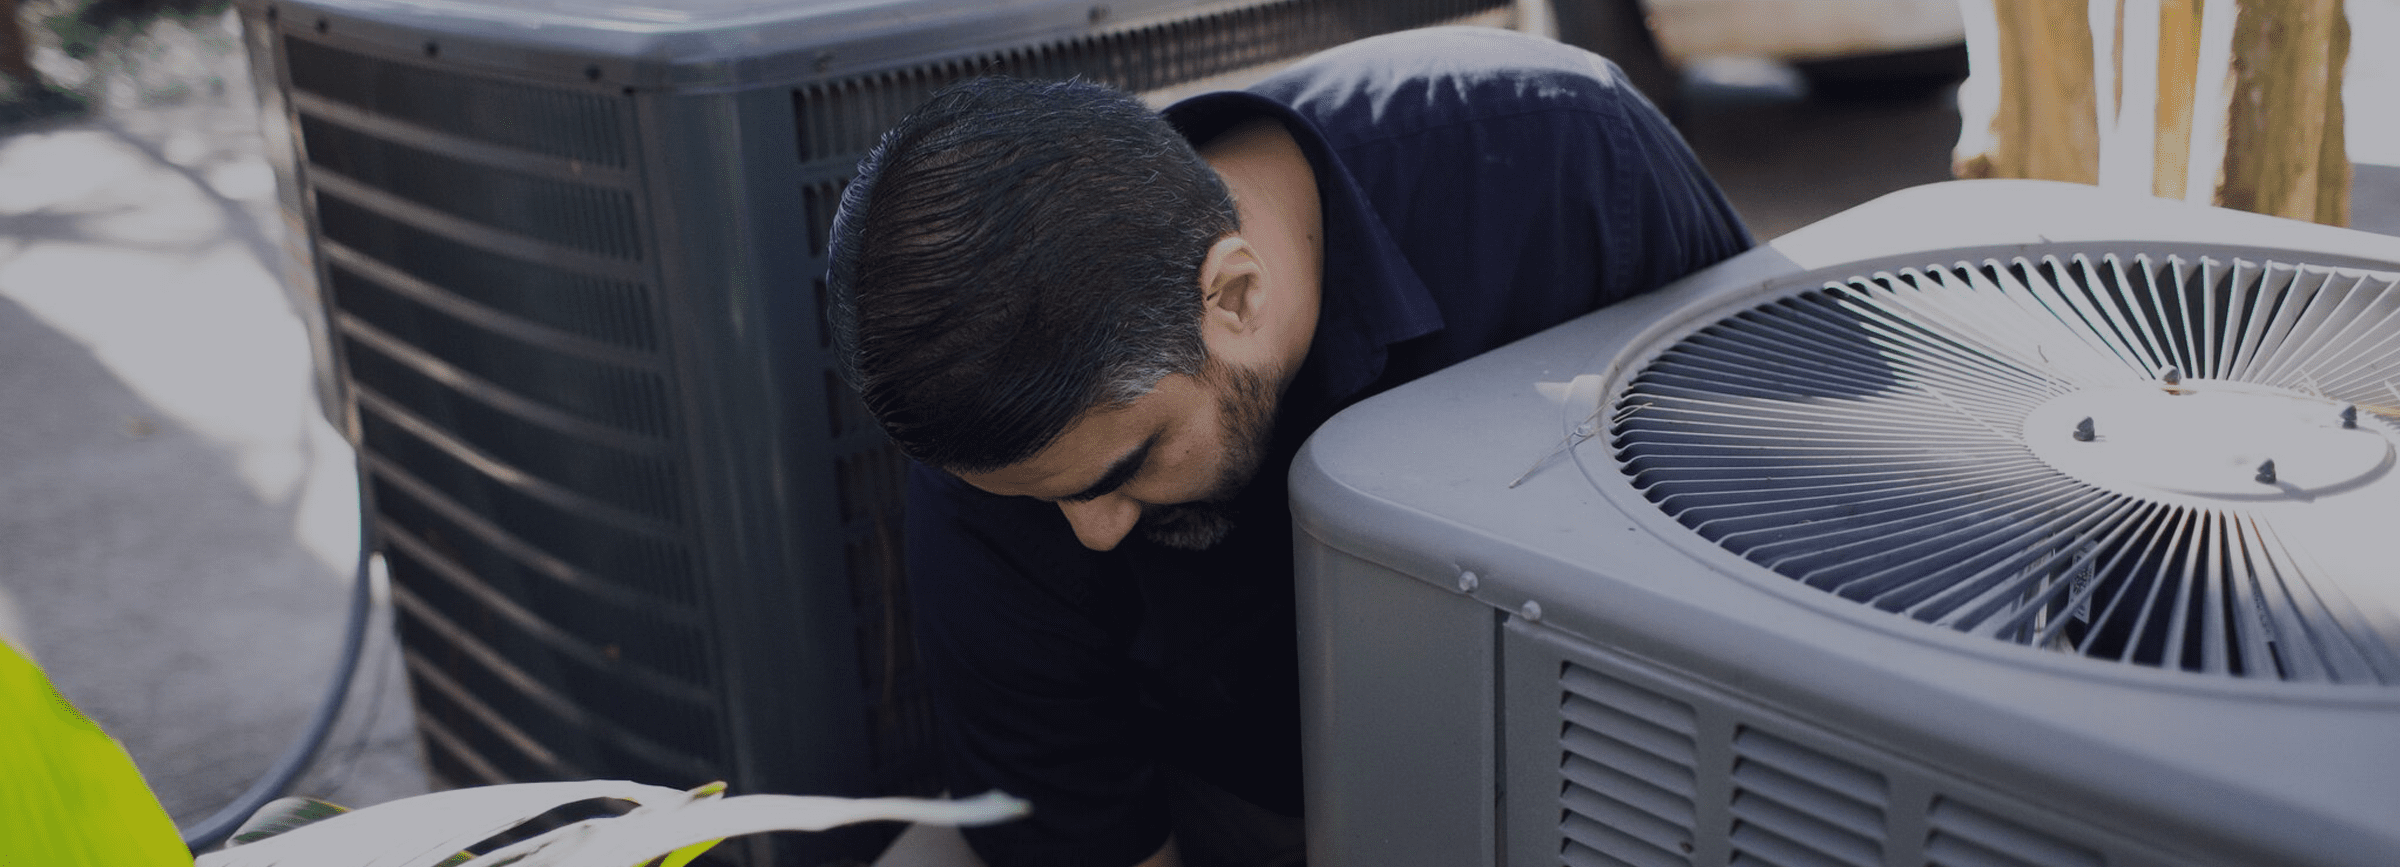 Technician working on air conditioning replacement